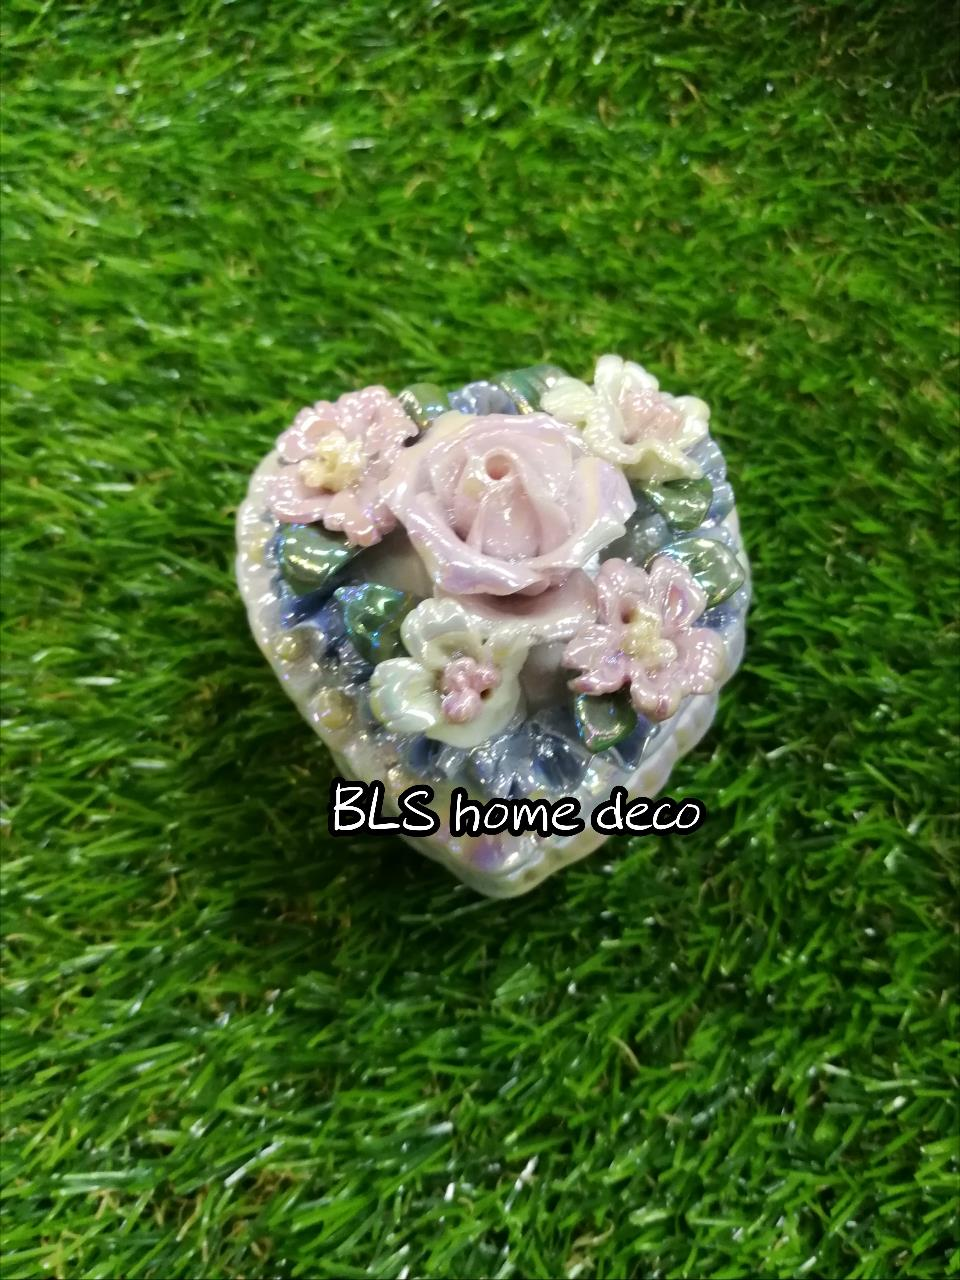 PORCELAIN LOVE SHAPE DESIGNED CONTAINER 03